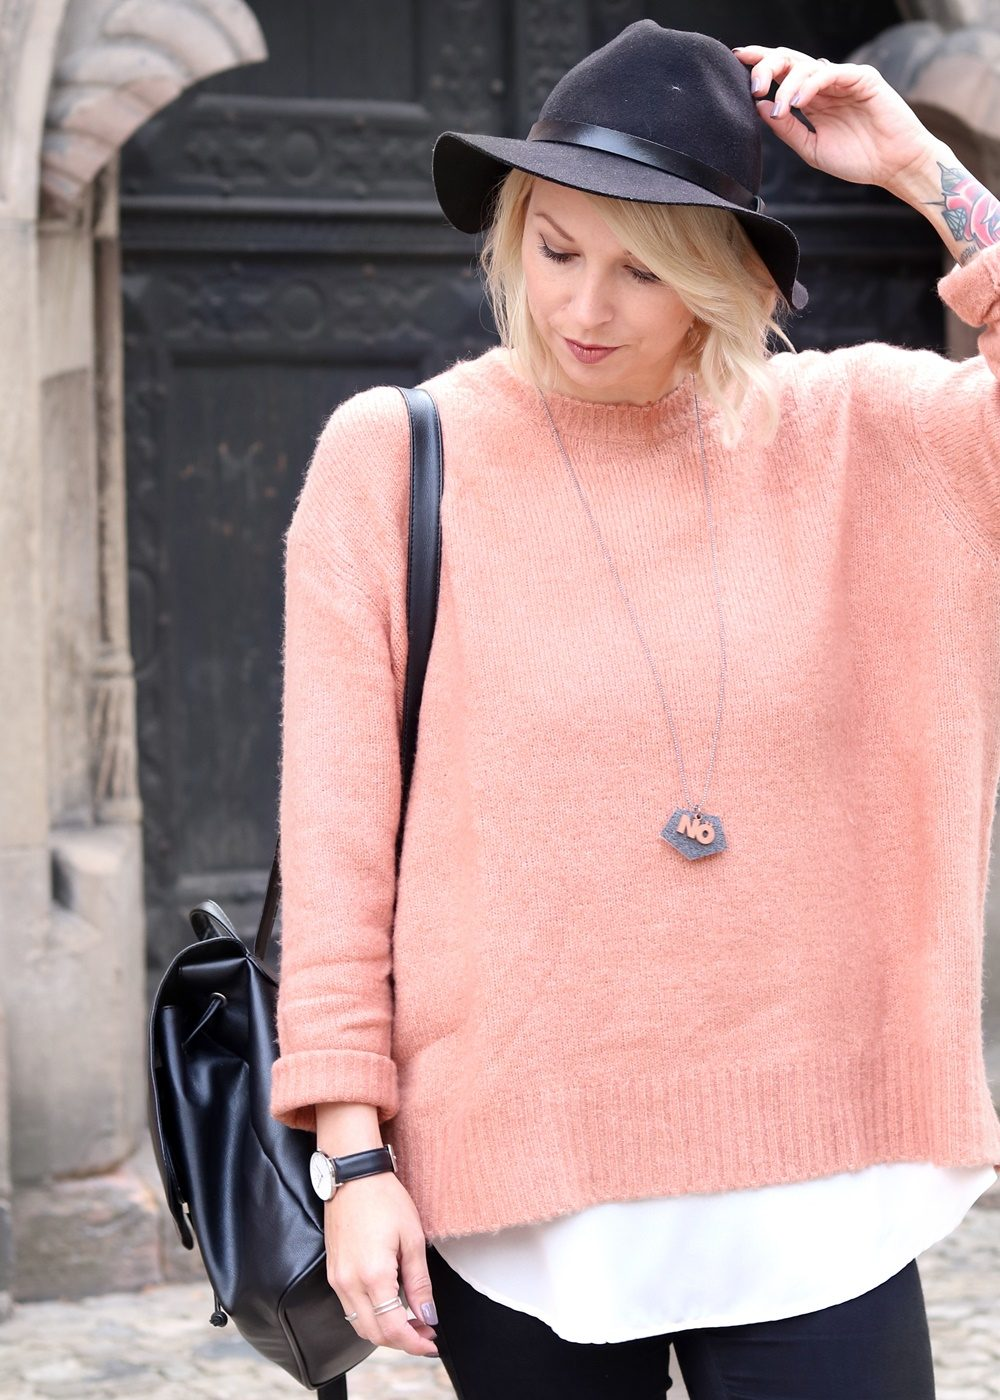 fashionblogger-outfit-rosa-strickpullover-zara-graue-sneaker-fell-rucksack-hut-jeans-3